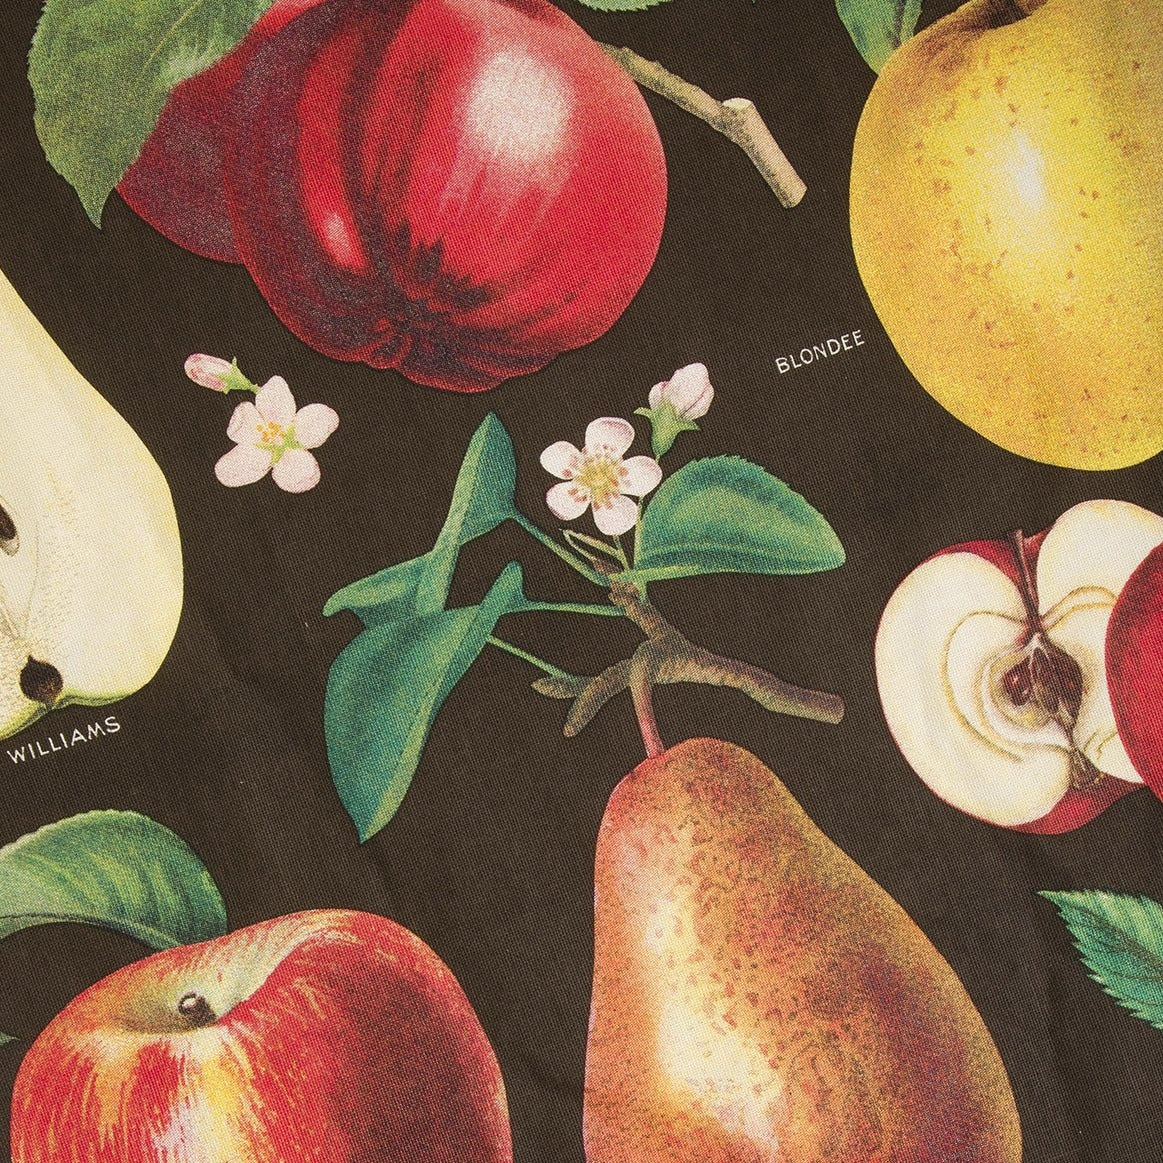 Apples and Pears Tea Towel - Picnic SF